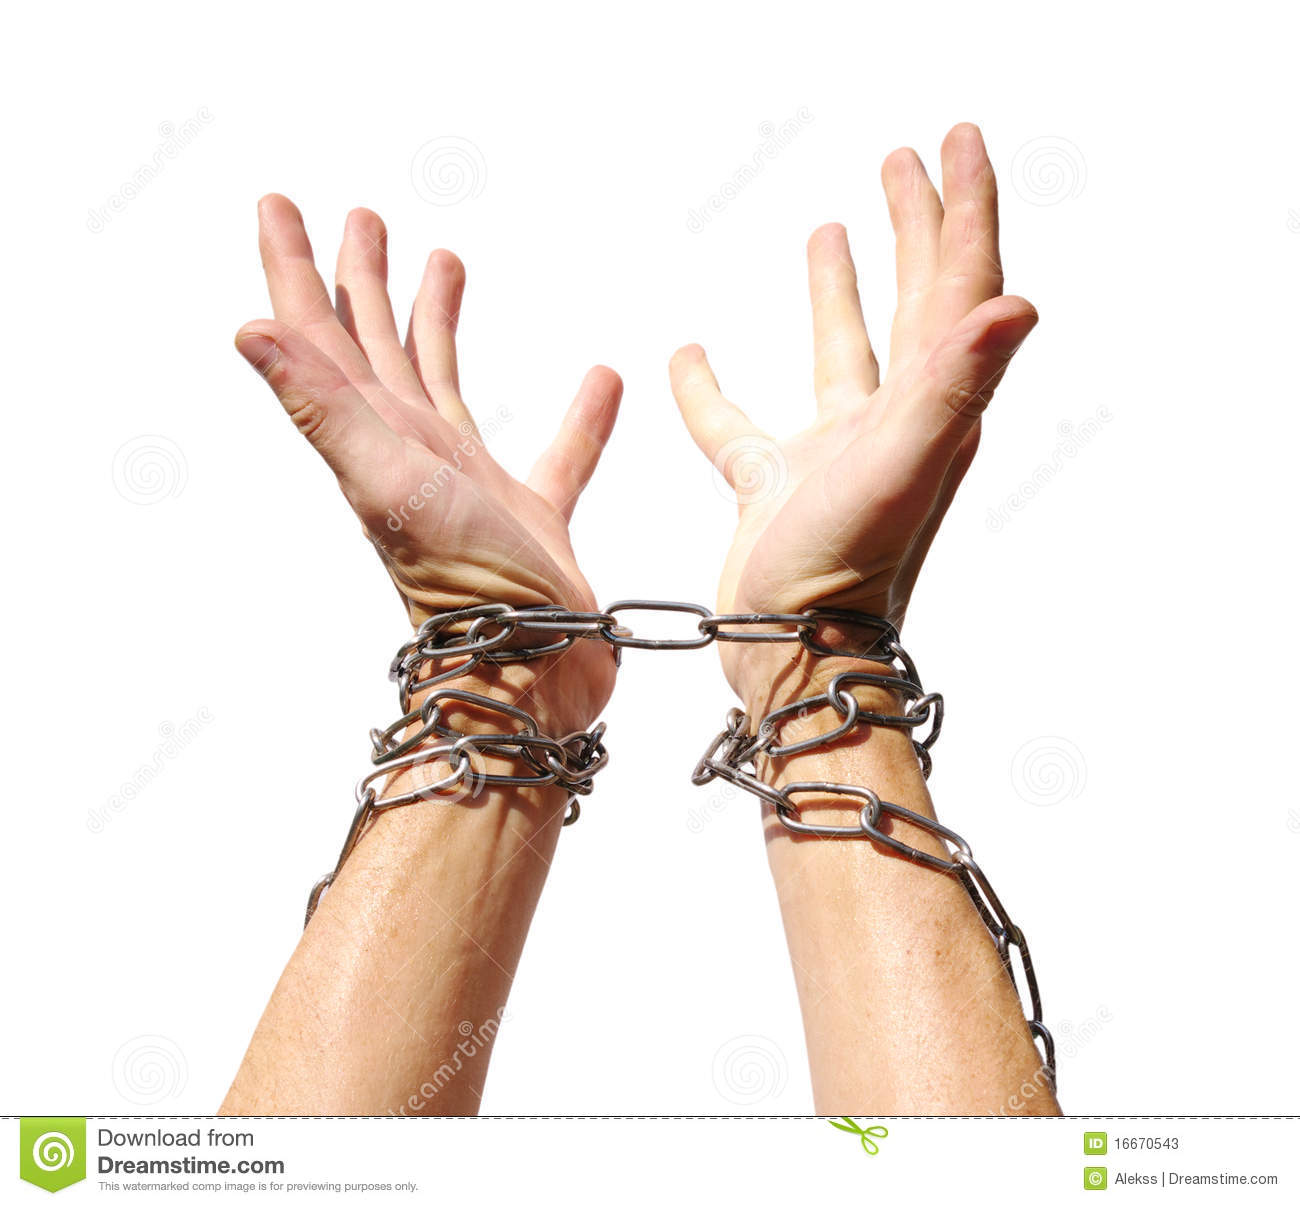 Hands chained together isolated on a white background.